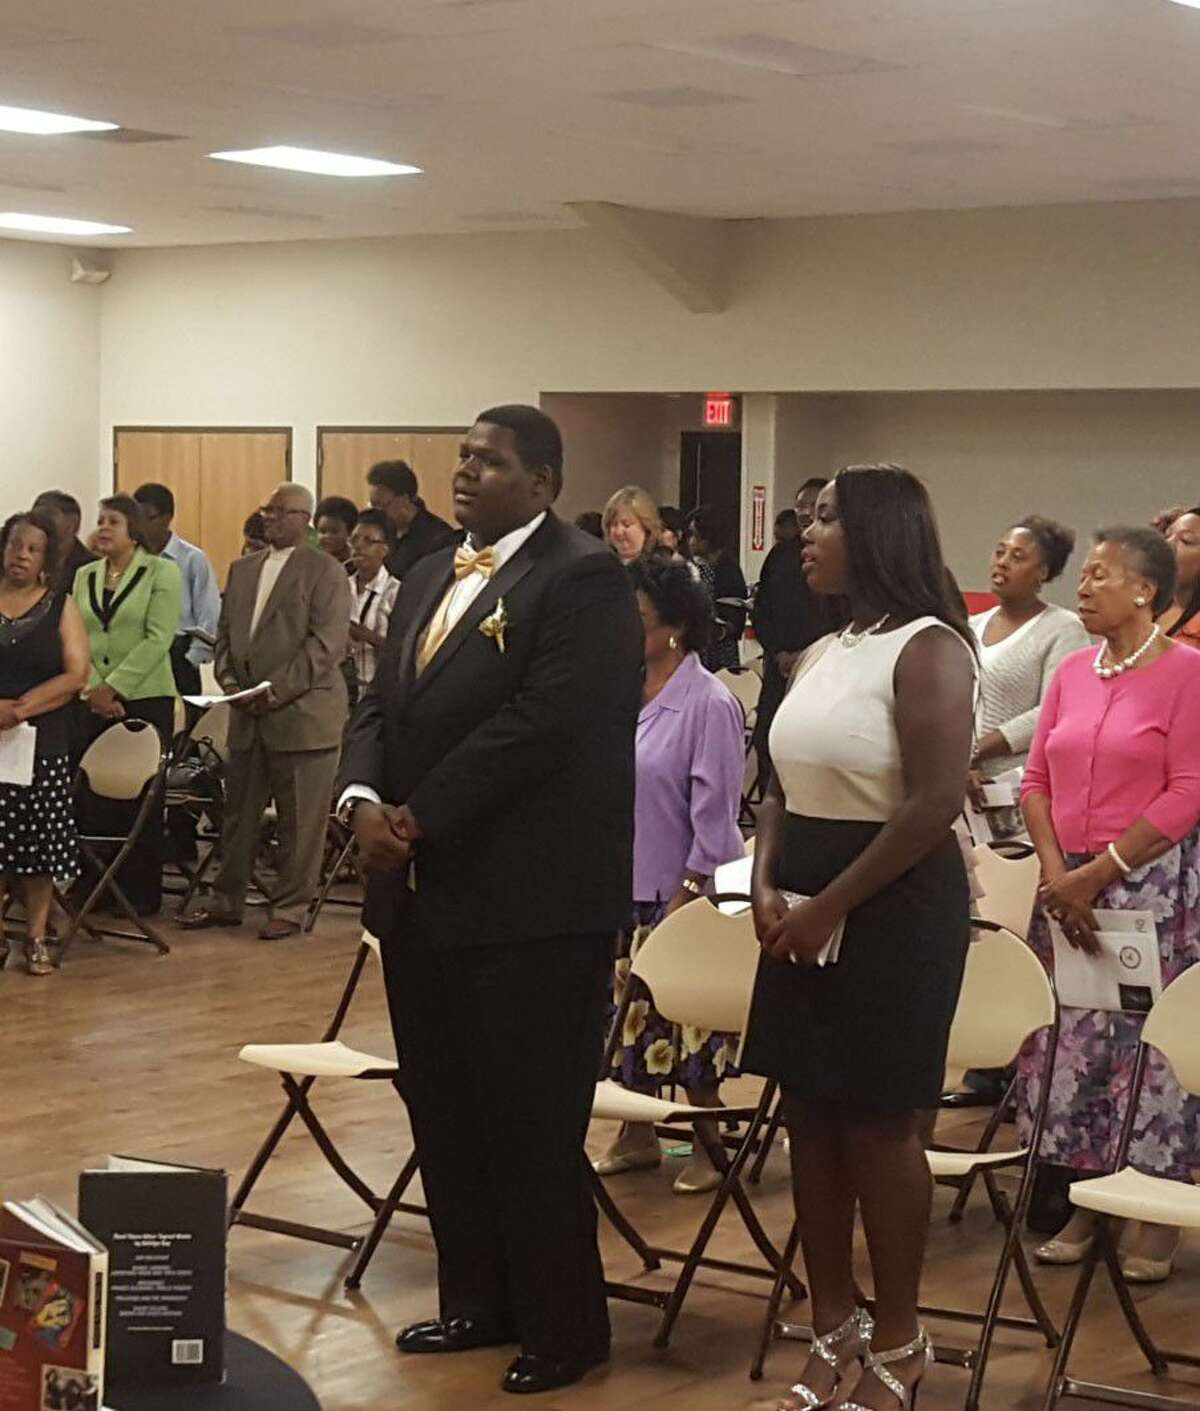 The Montgomery County NAACP scholarship recognition program awarded $1,000 each to Jeremy Wiltz and Elizabeth Akintunde, who are both students from Oak Ridge High School, on Saturday at the City of Conroe Activity Center.